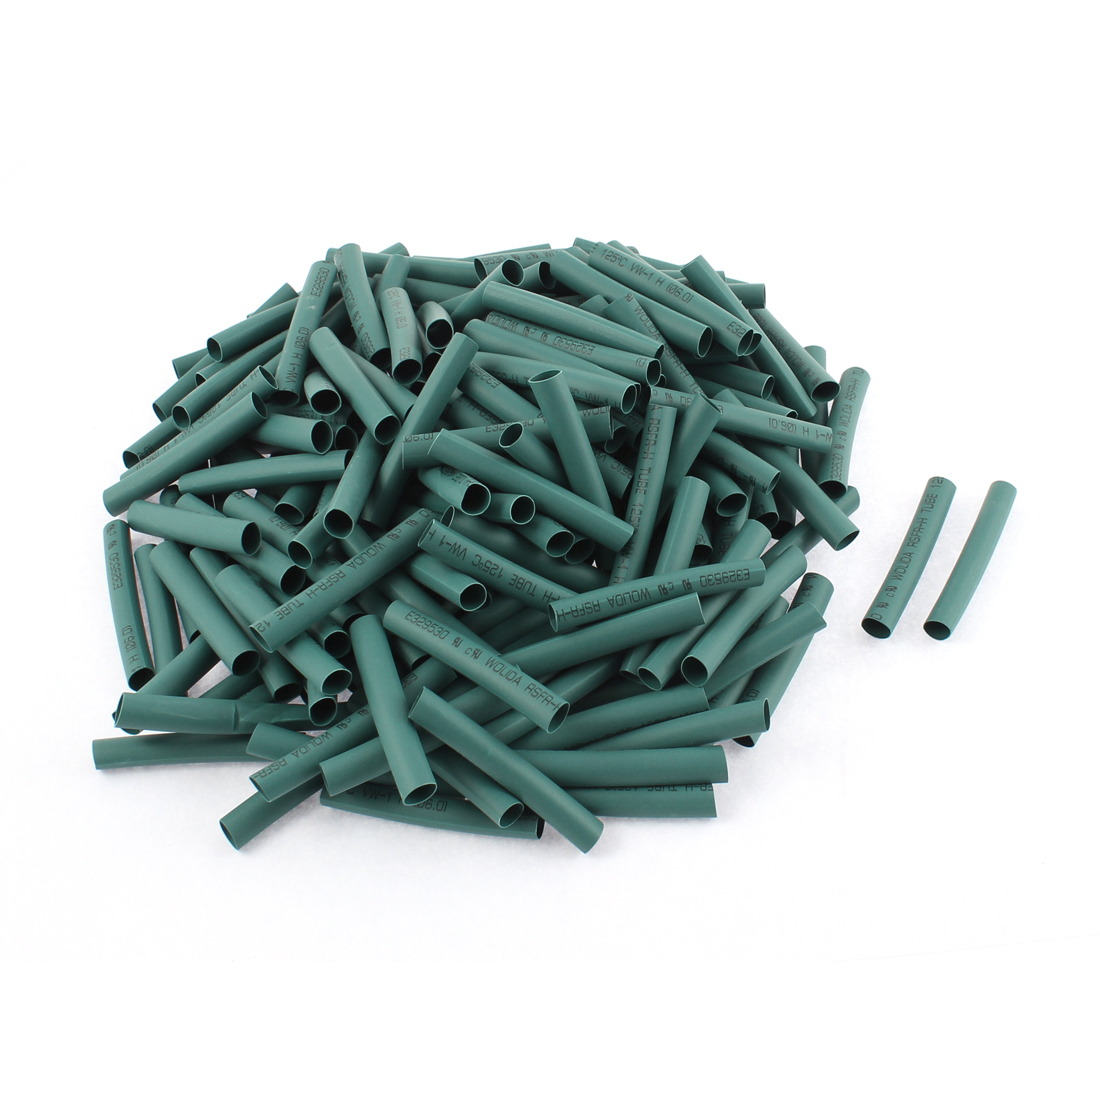 Electrical Connection Cable Sleeve 50mm Length Heat Shrink Tubing Green 200Pcs